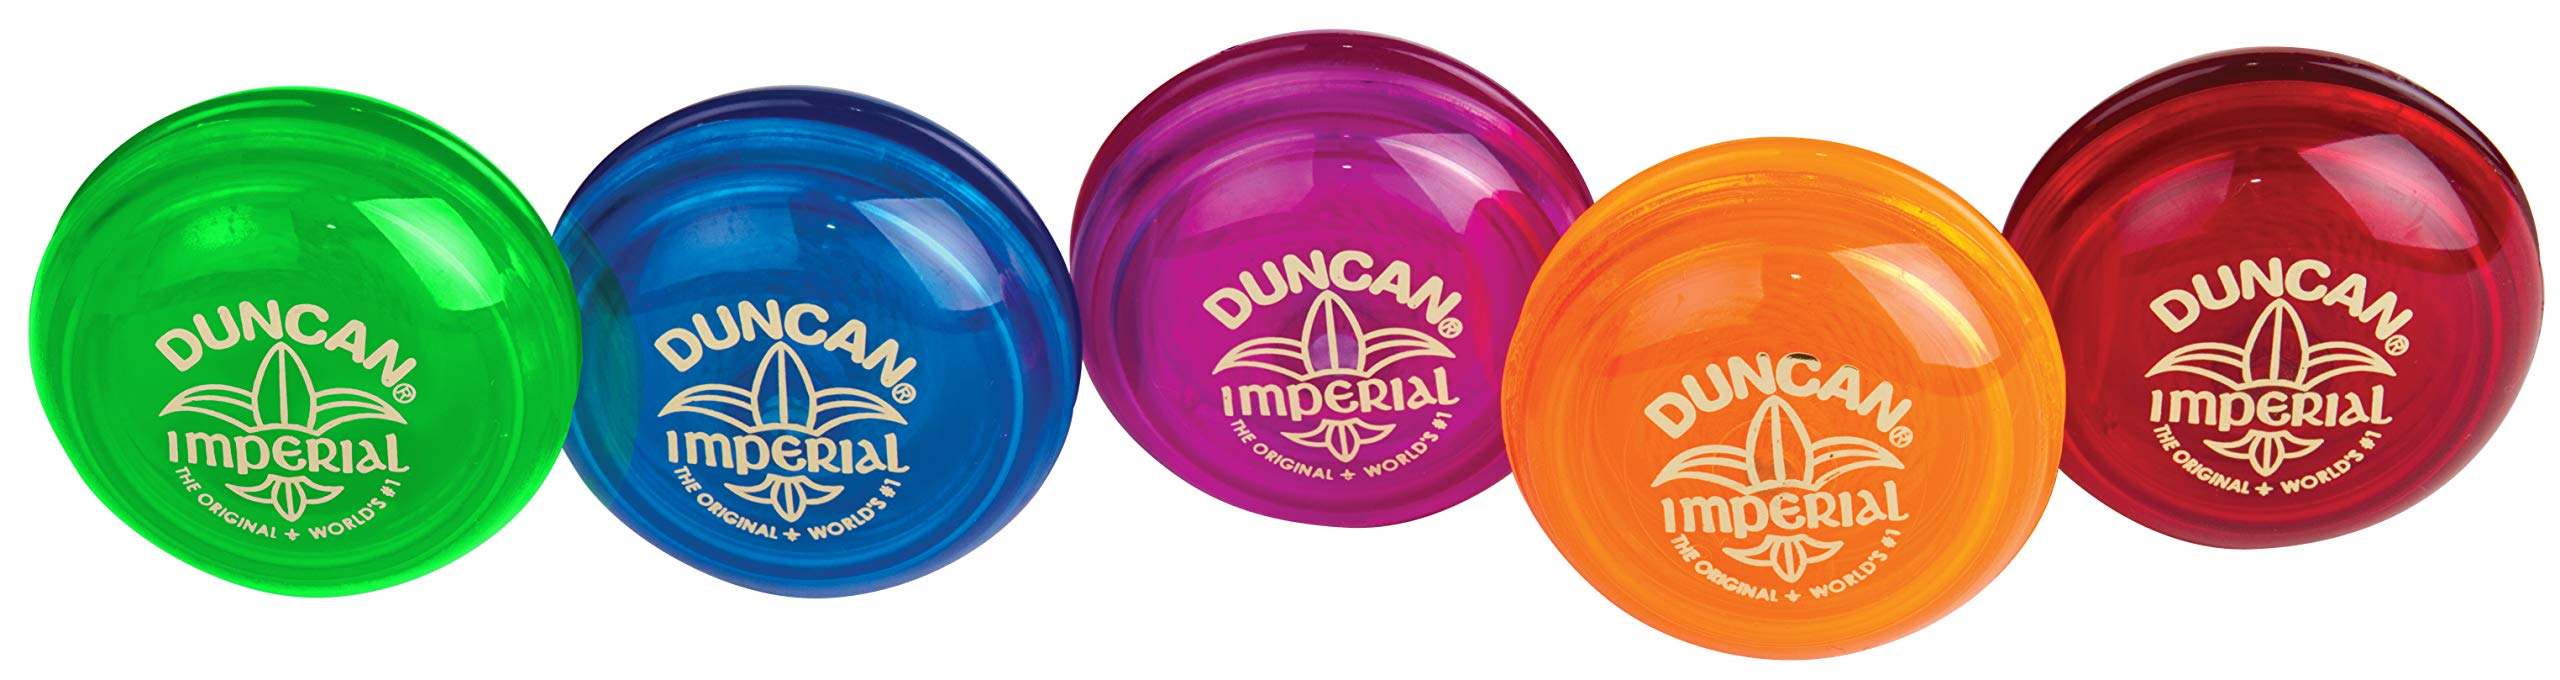 Duncan Toys Imperial Yo-Yo, Beginner Yo-Yo with String, Steel Axle and Plastic Body, Colors May Vary